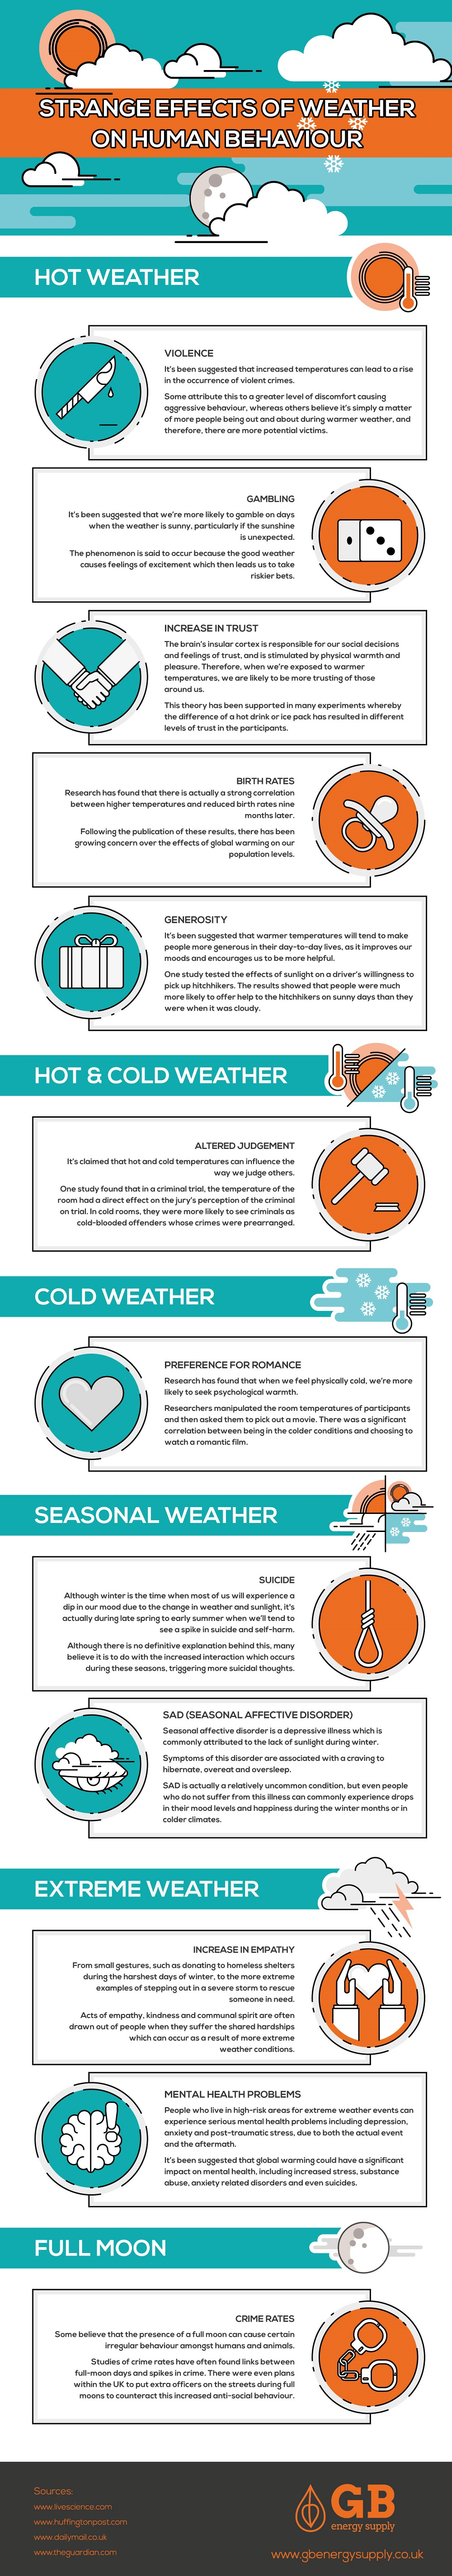 infographic how weather affects human behavior